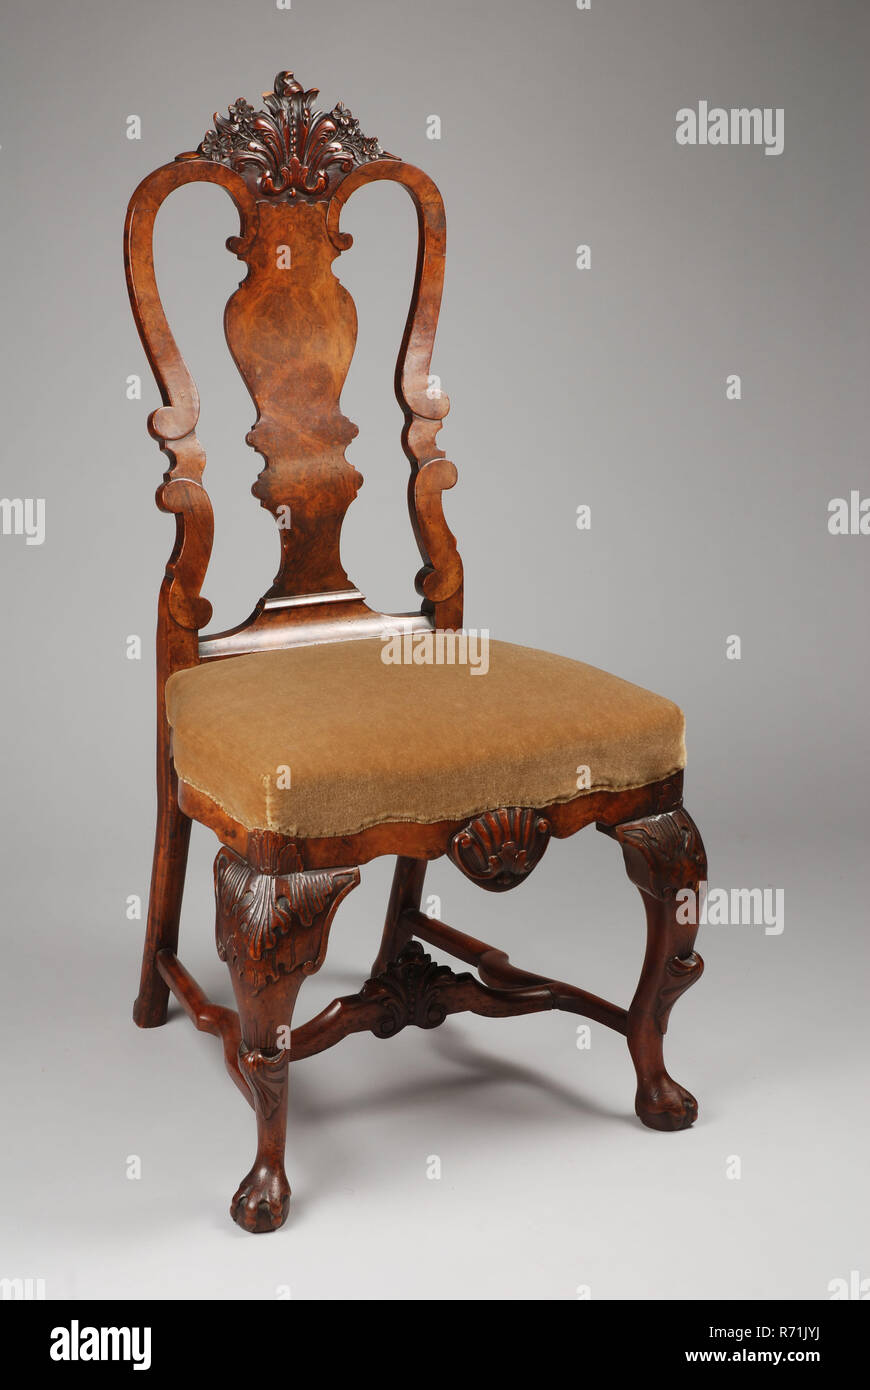 Picture of: Walnut Queen Anne Chair Chair Furniture Furniture Interior Design Walnut Beech Wood Velours Burr Walnut Wood Carving On The Hood The Front And Backrest Line And Lines Veneered With Carrot Green Velvet